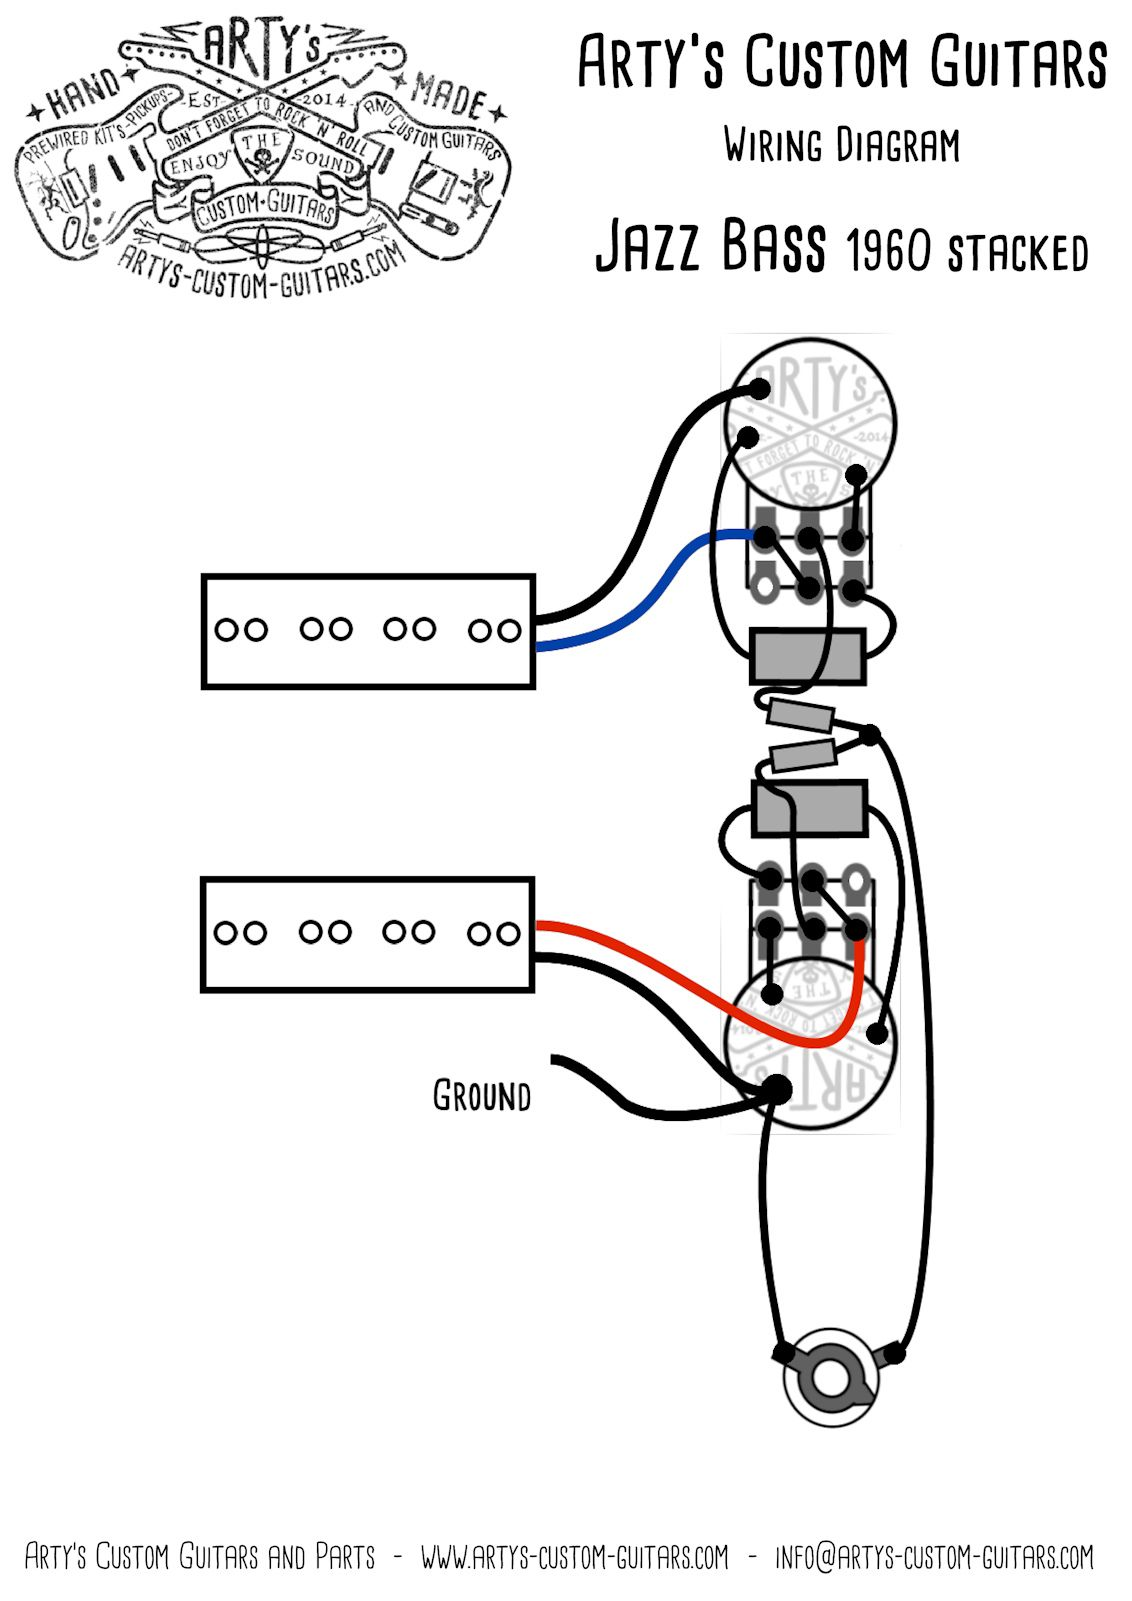 small resolution of arty s custom guitars vintage pre wired prewired kit wiring assembly harness arty jazz bass 1960 1962 stacked pots 3 hole j bass